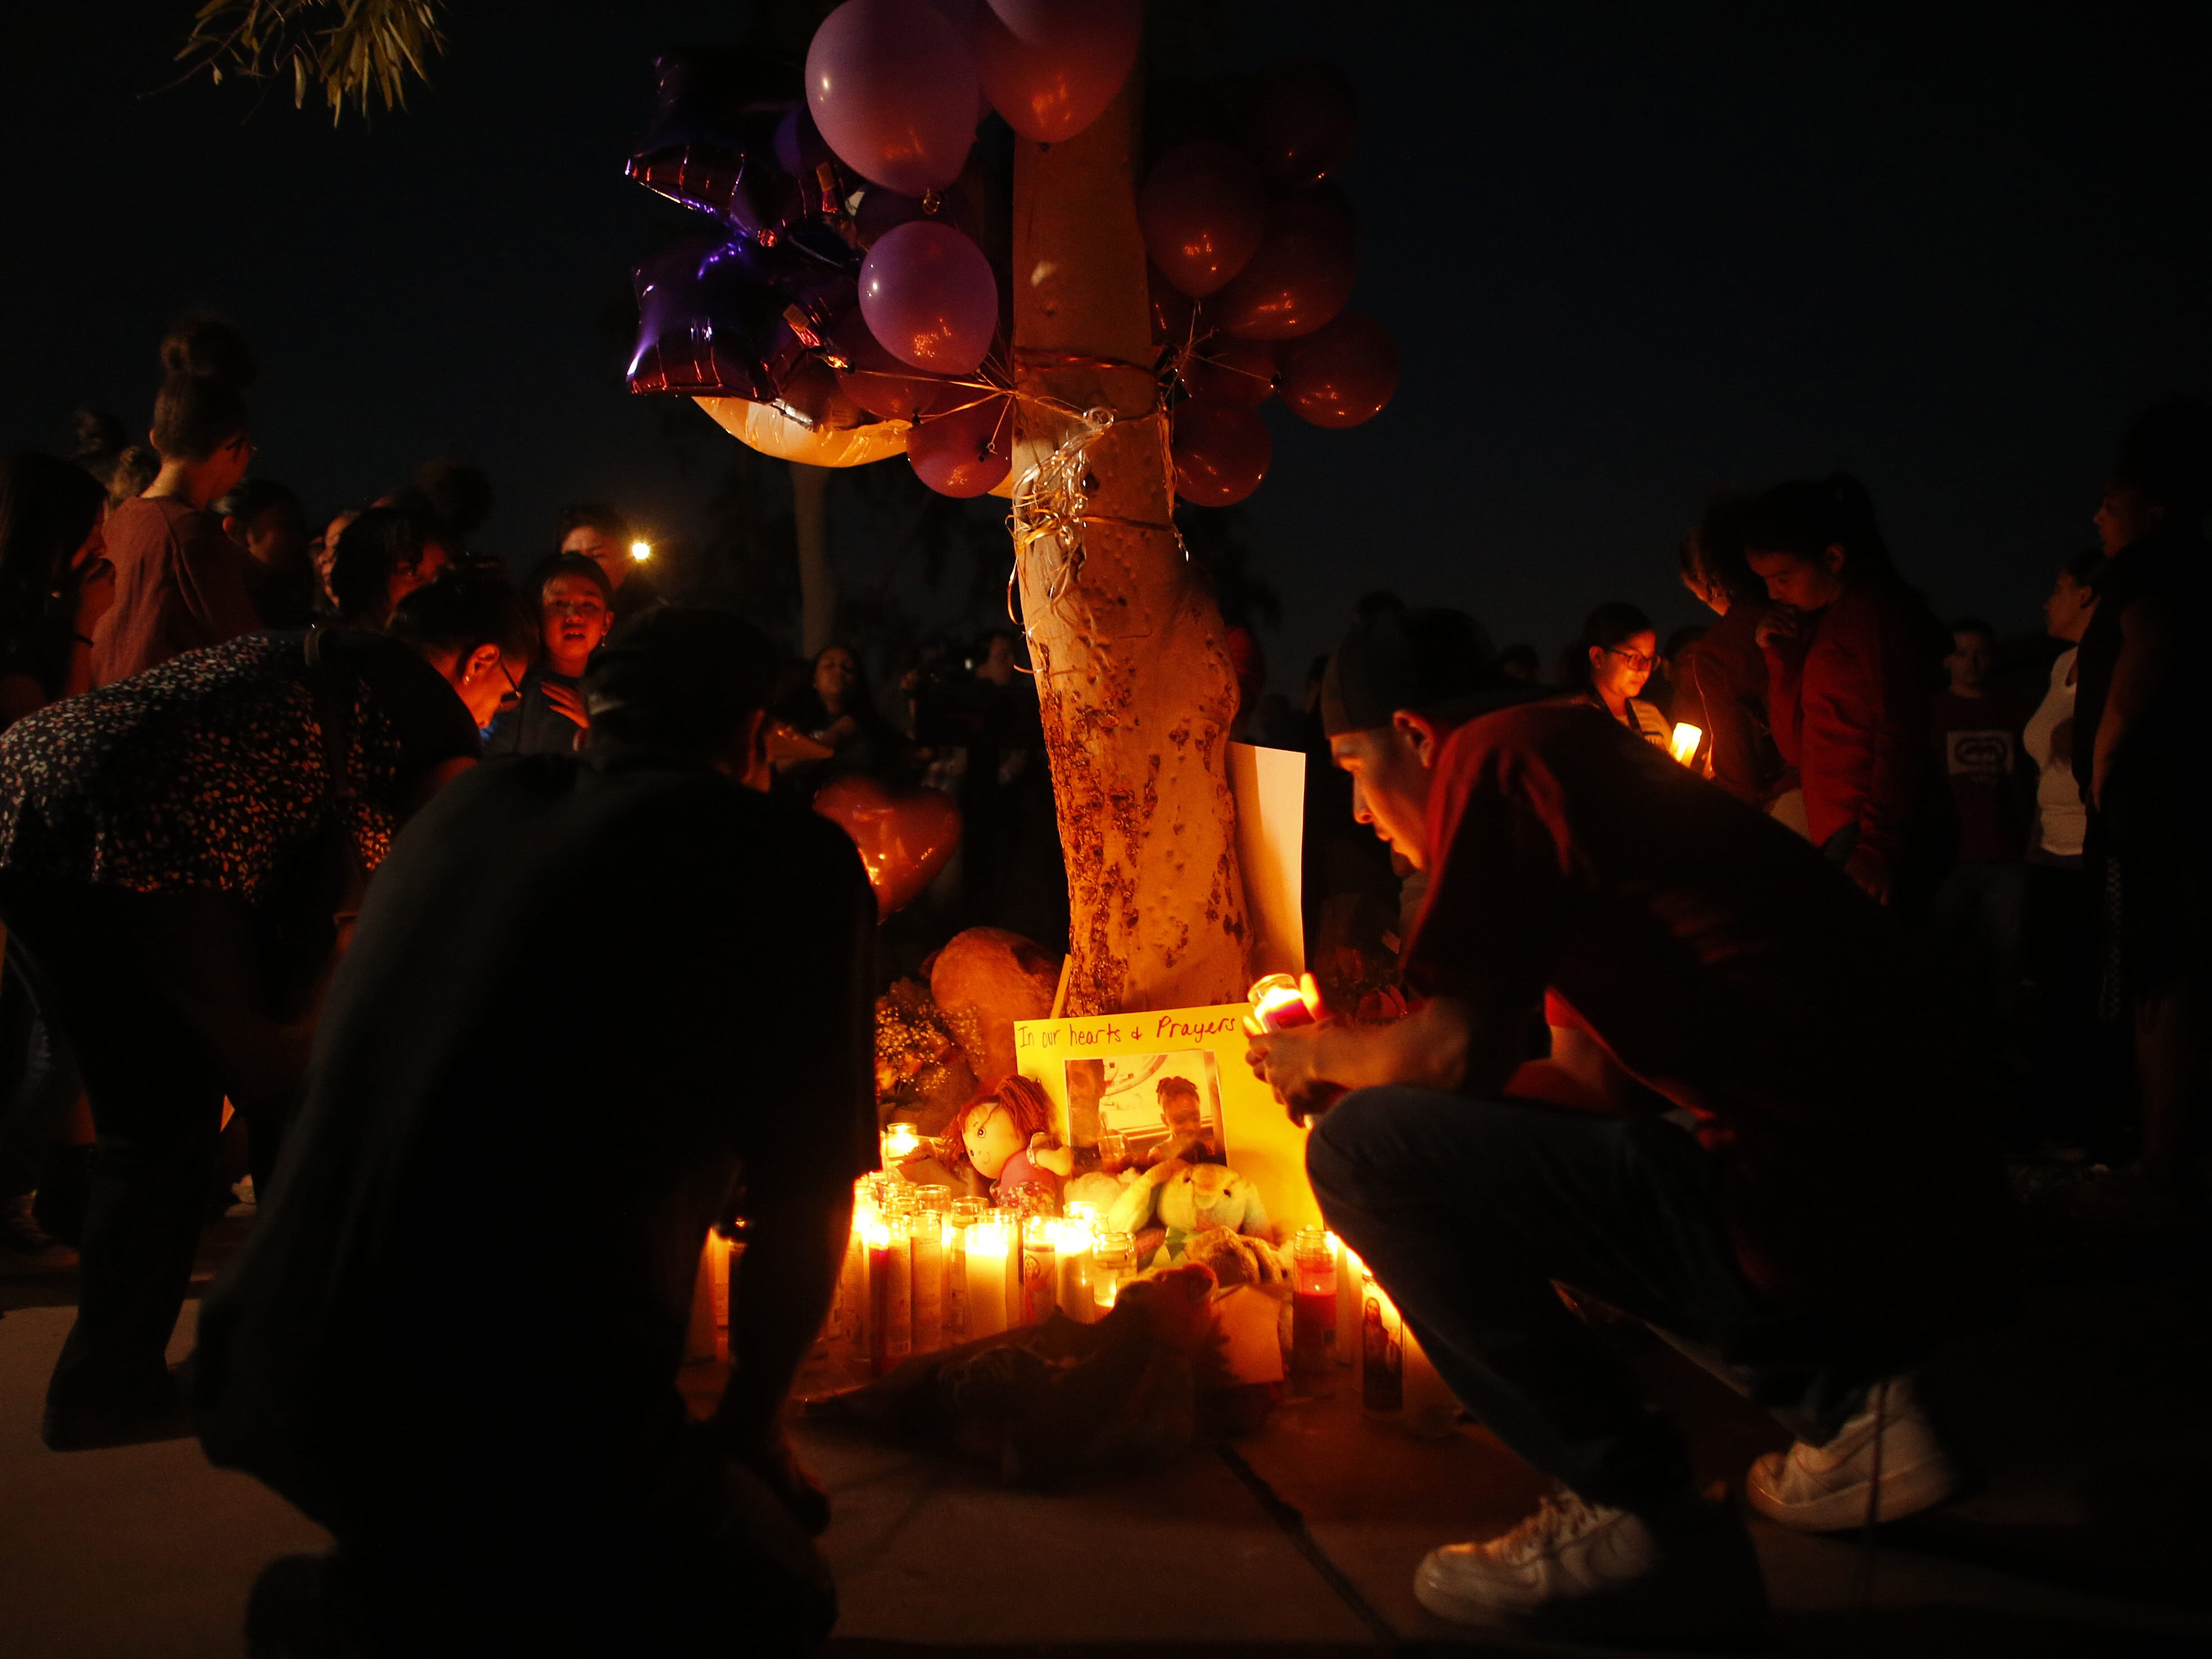 People place candles at a vigil for Summer Bell Brown on April 5, 2019, outside her home where she was shot and killed in Phoenix. Brown was 10 years old.